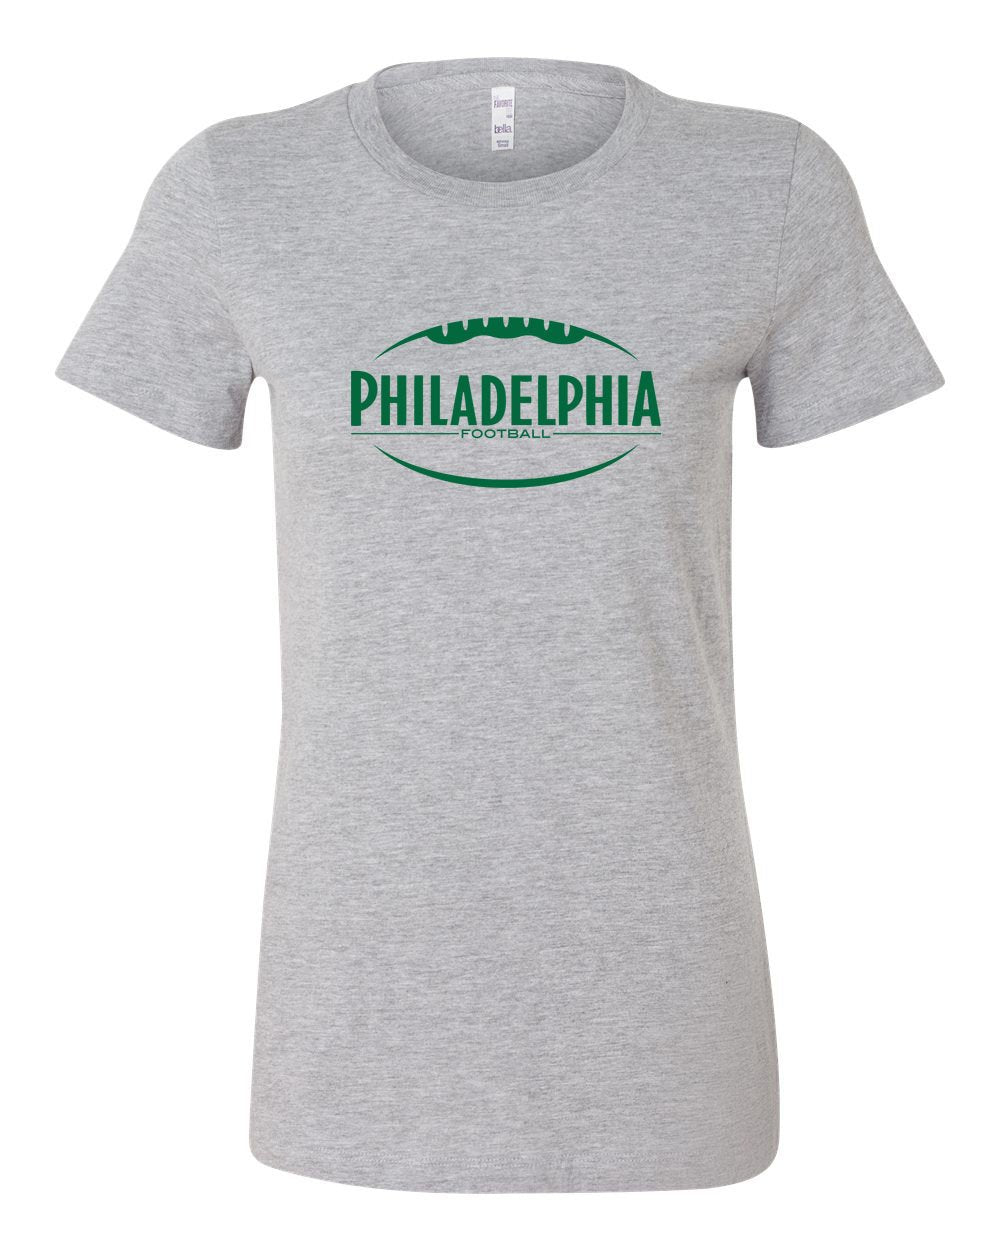 Philadelphia Football LADIES Junior-Fit T-Shirt